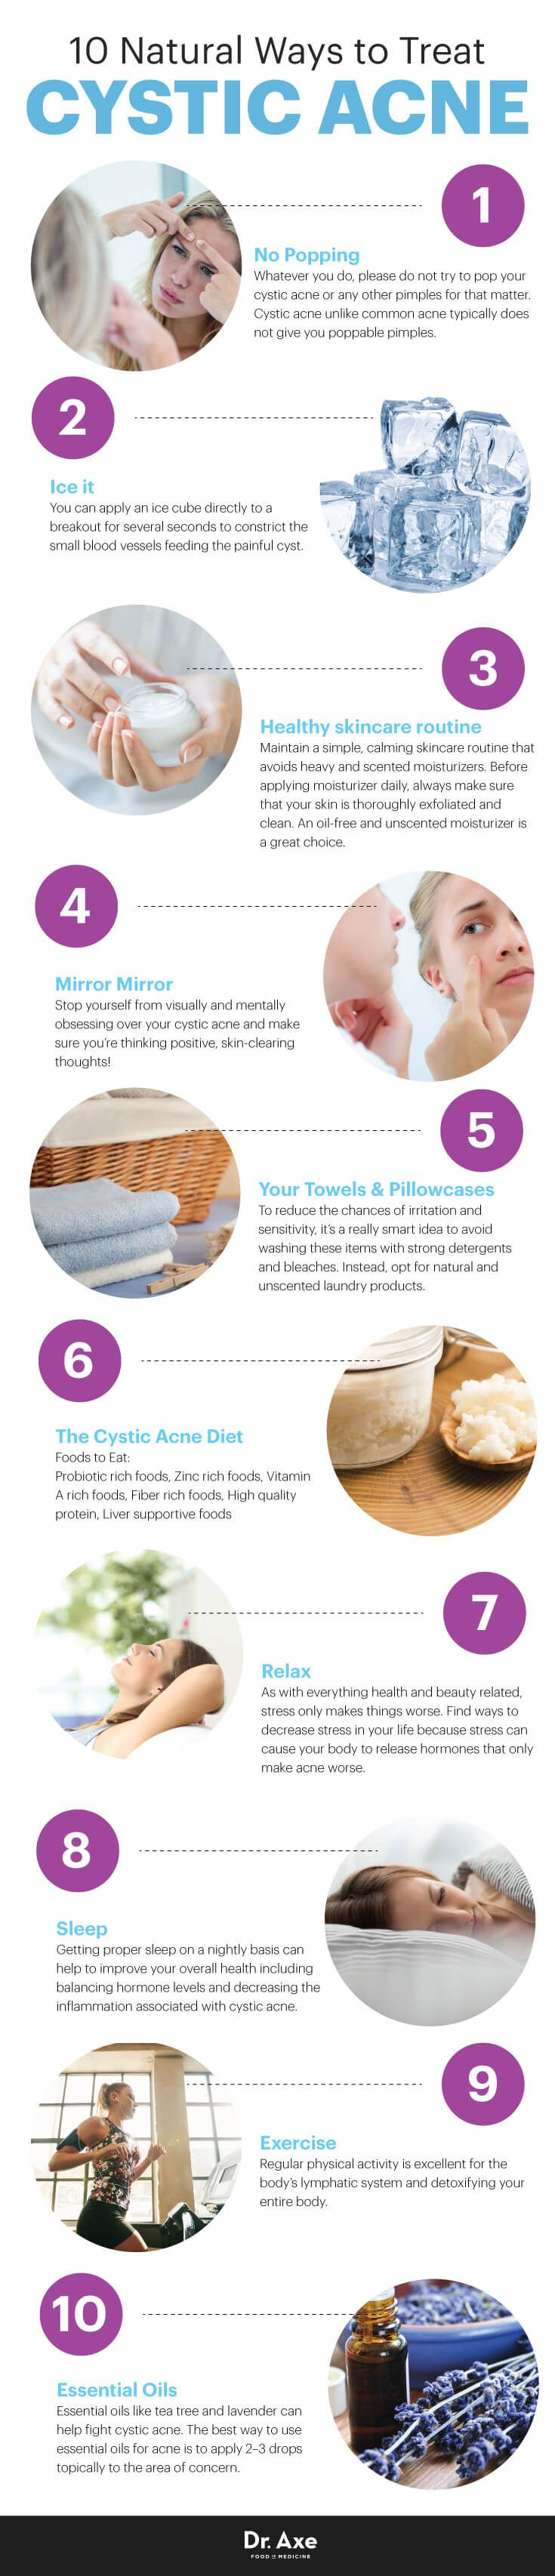 10 natural ways to treat cystic acne - Dr. Axe http://www.draxe.com #health #holistic #natural